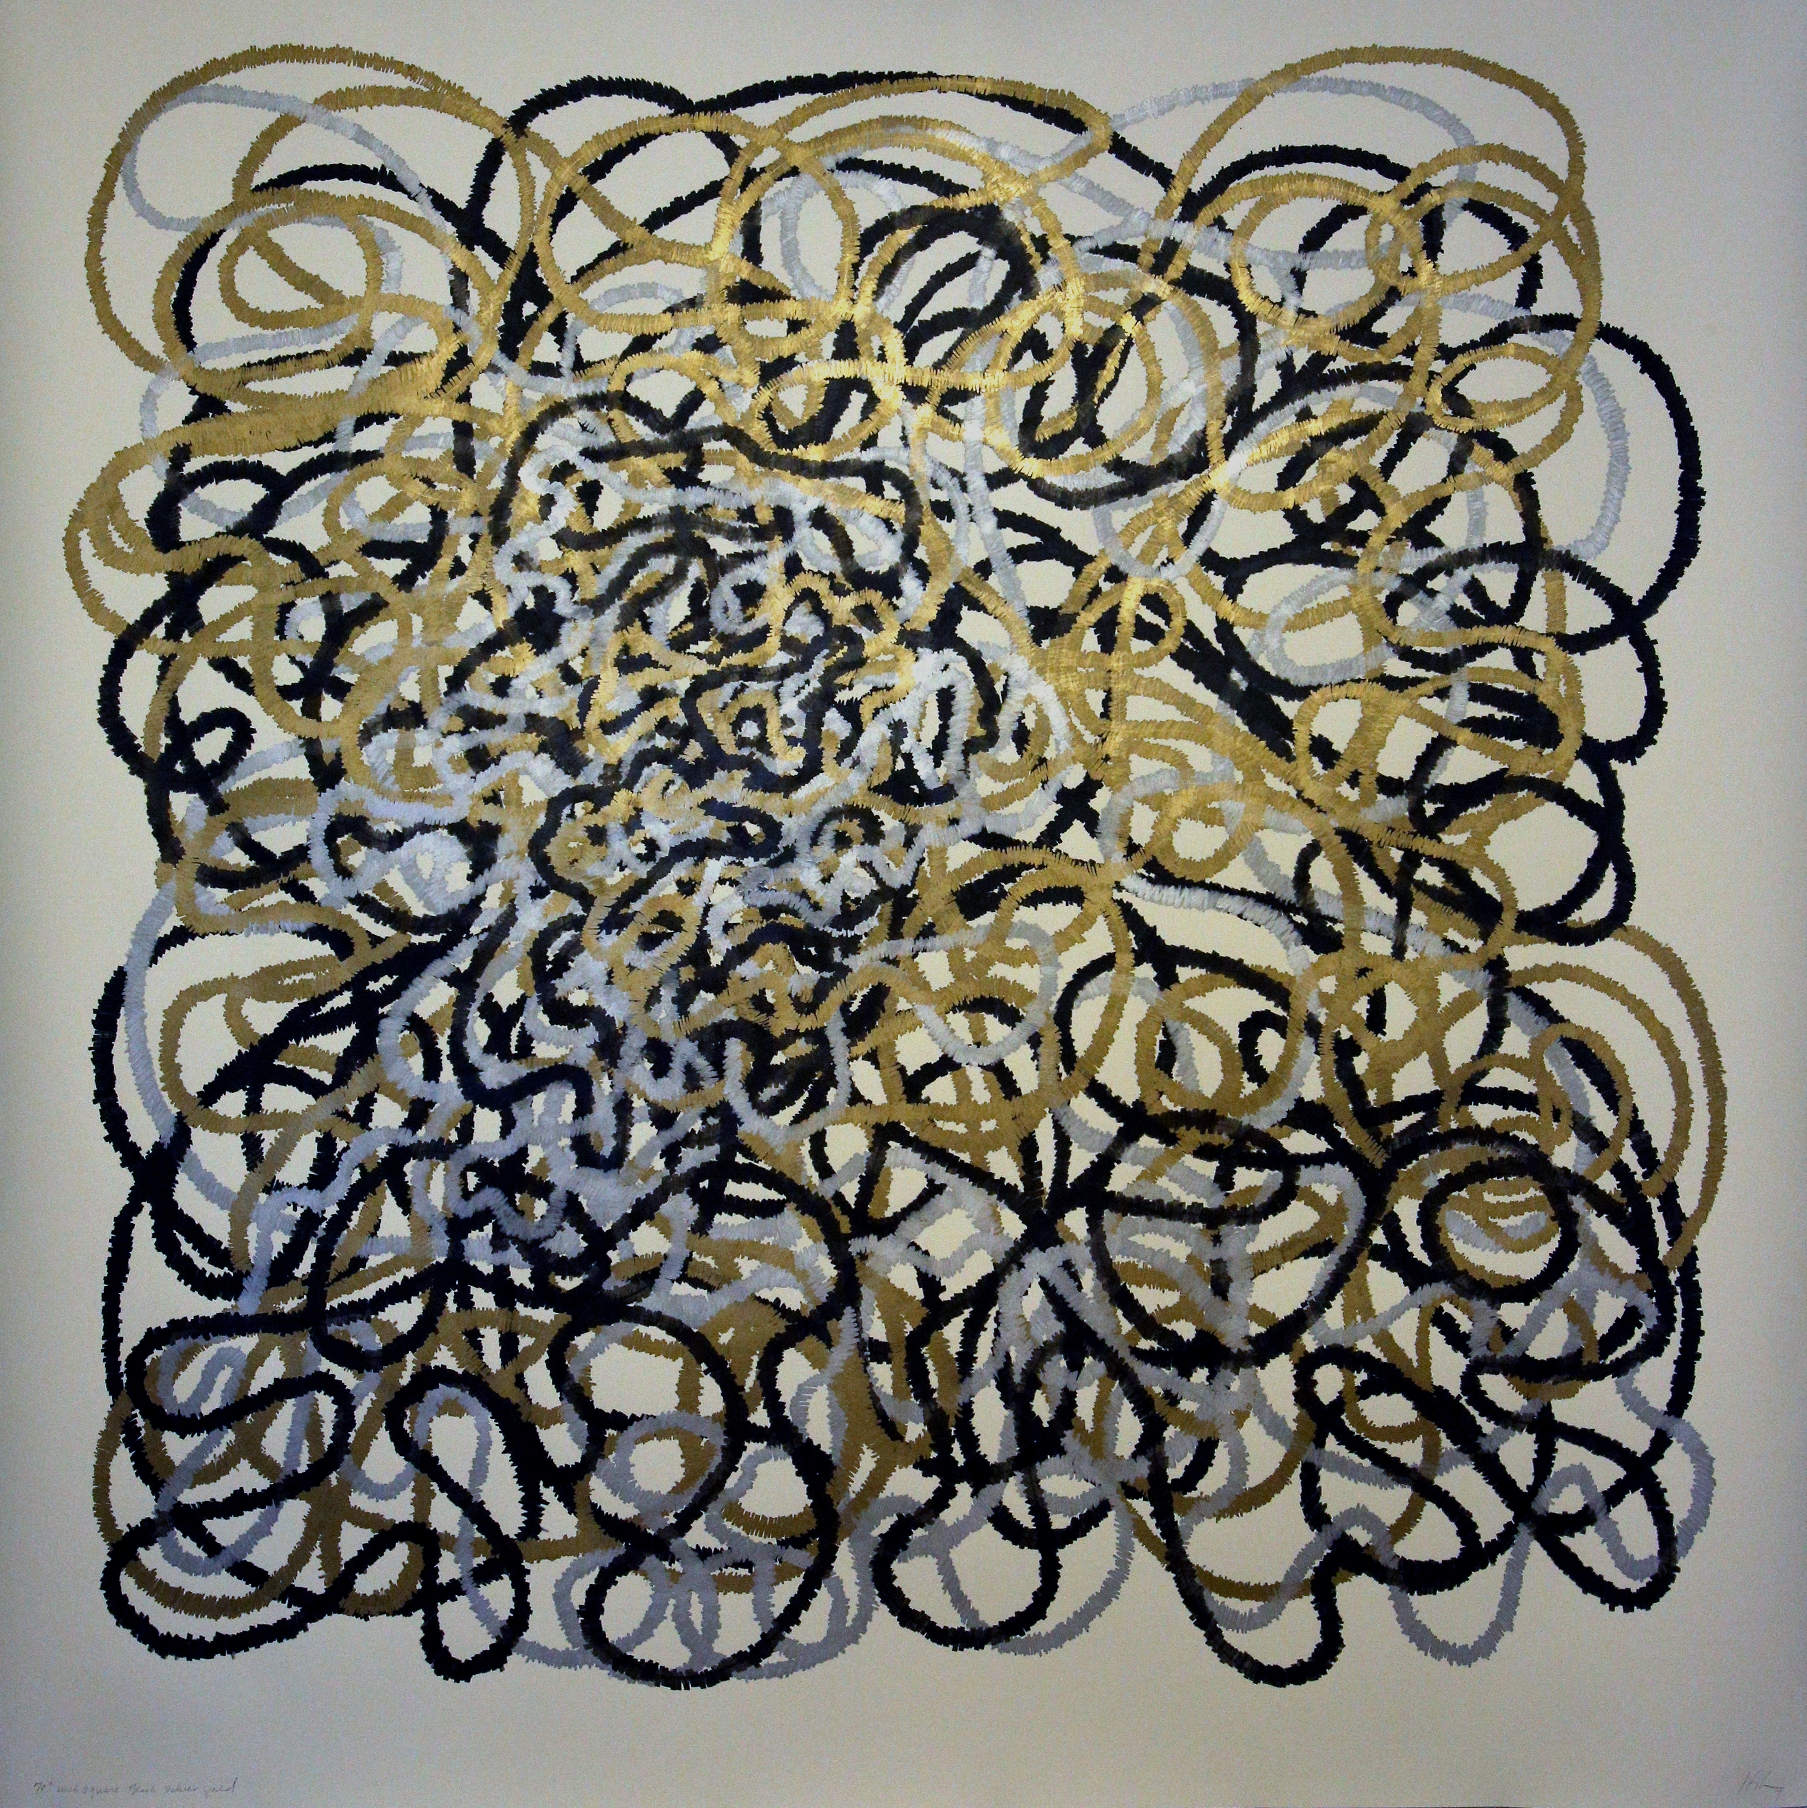 70 inch Square Drawing Black, Silver, Gold, 2014, 69.5 in h x 70 in w, black pigmented pen, gold and silver marker on rag paper for Website.jpg